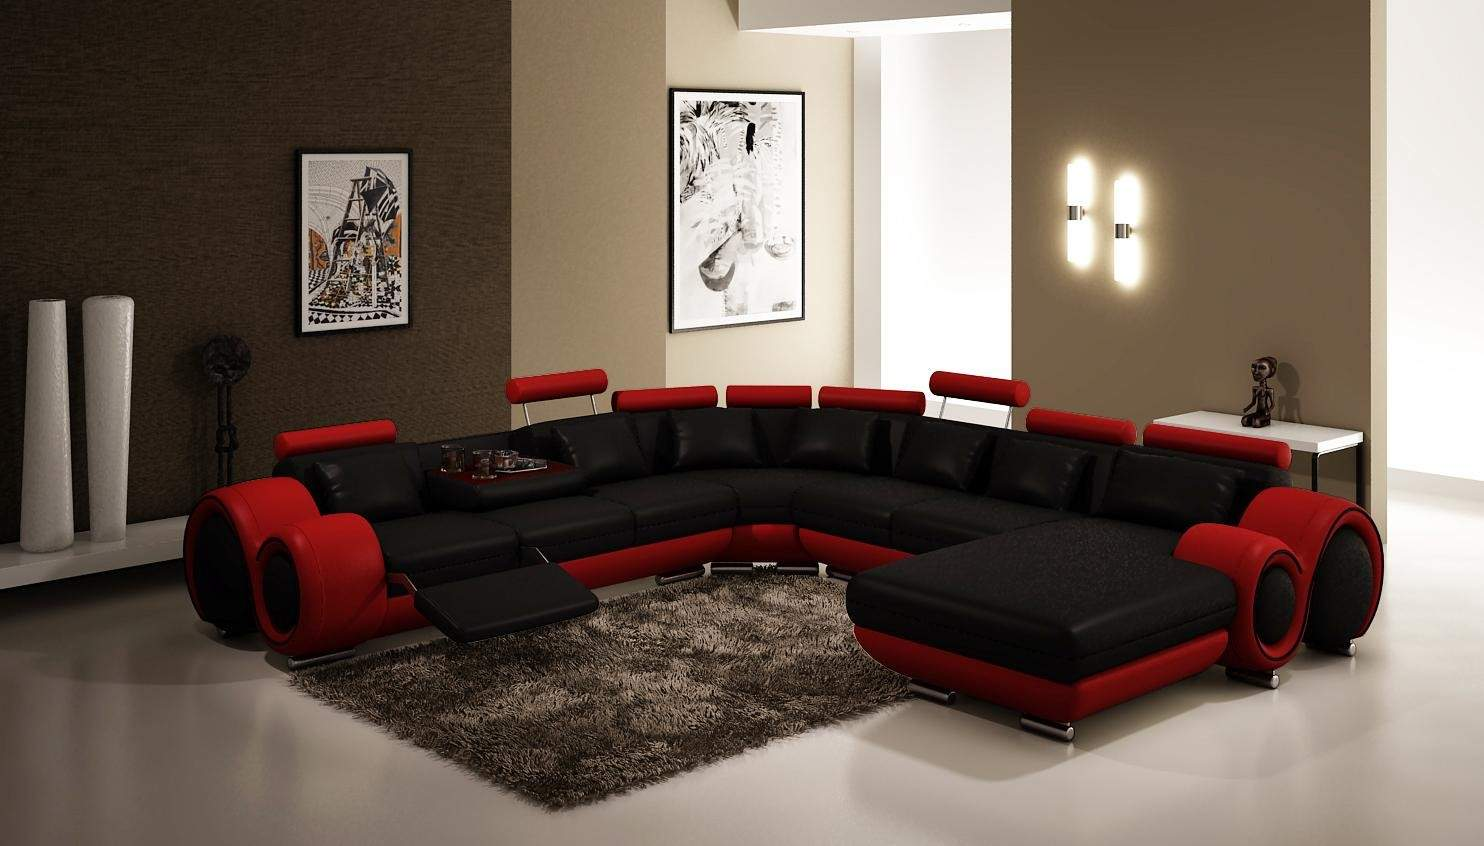 modern sectional couches i black and red theme on white ceramic floor plus carpet matched with